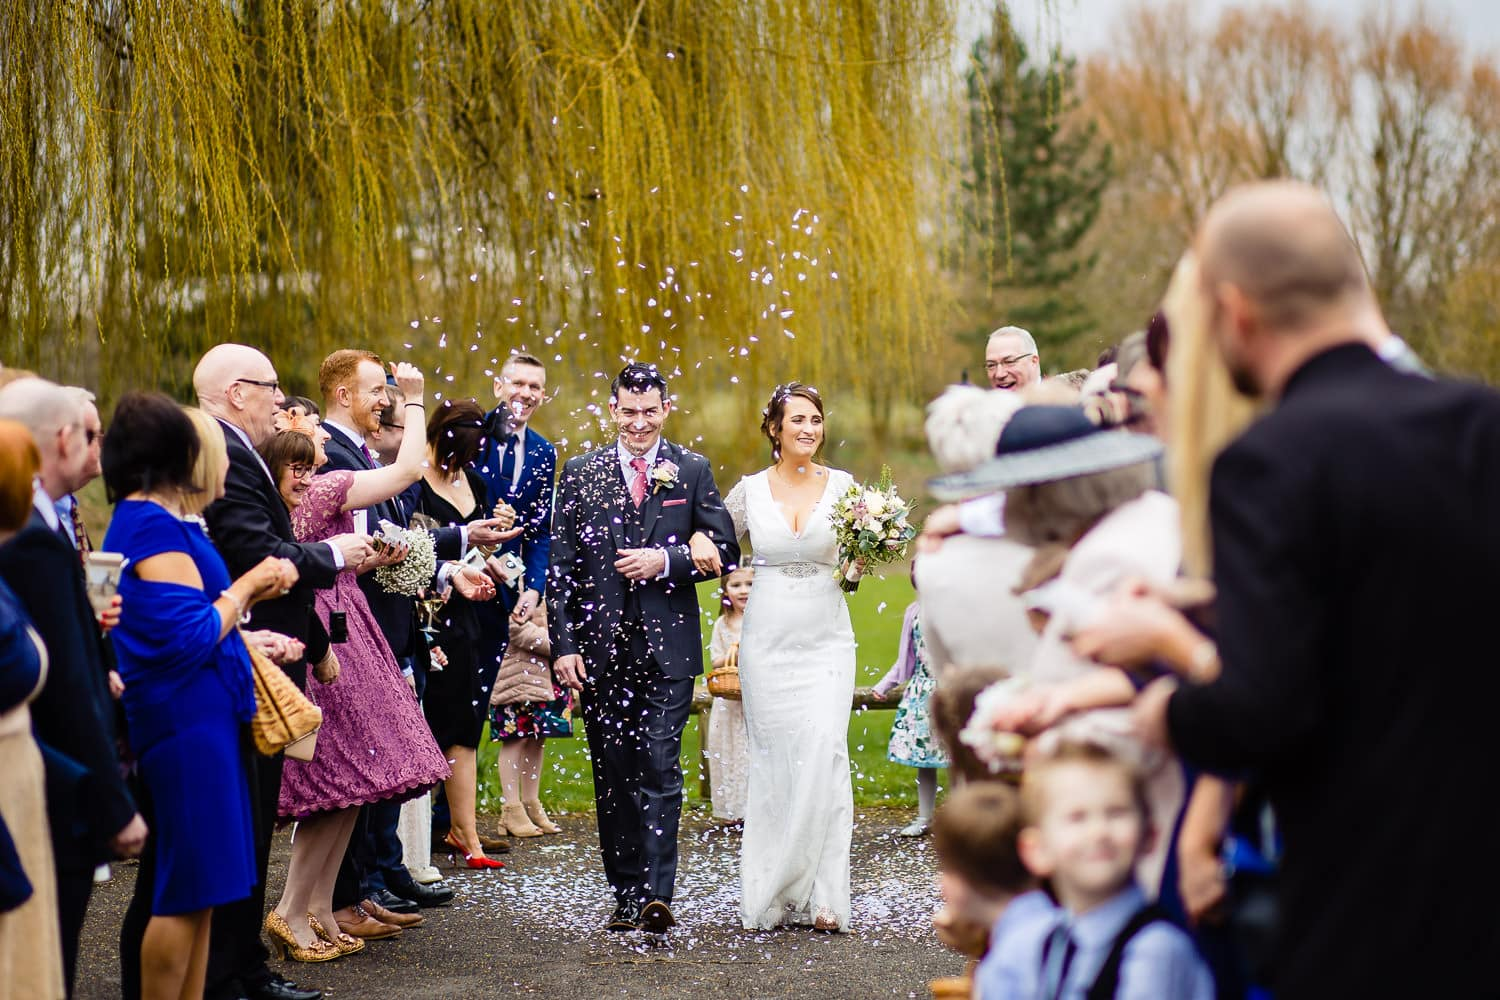 Northamptonshire Wedding Photography captures couple showered with confetti